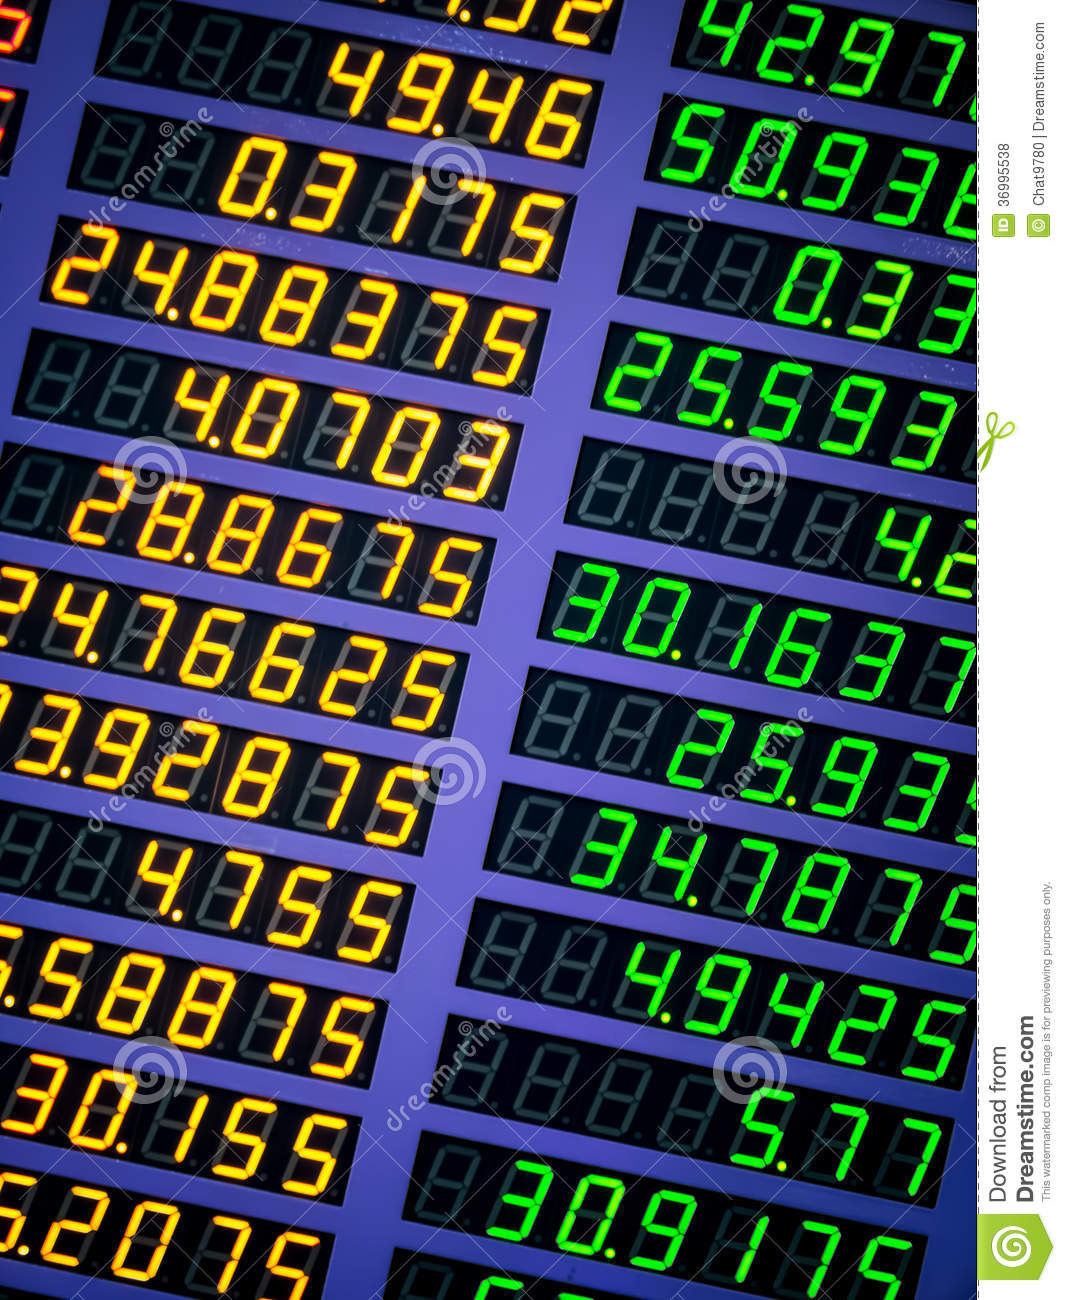 how to read exchange rate board